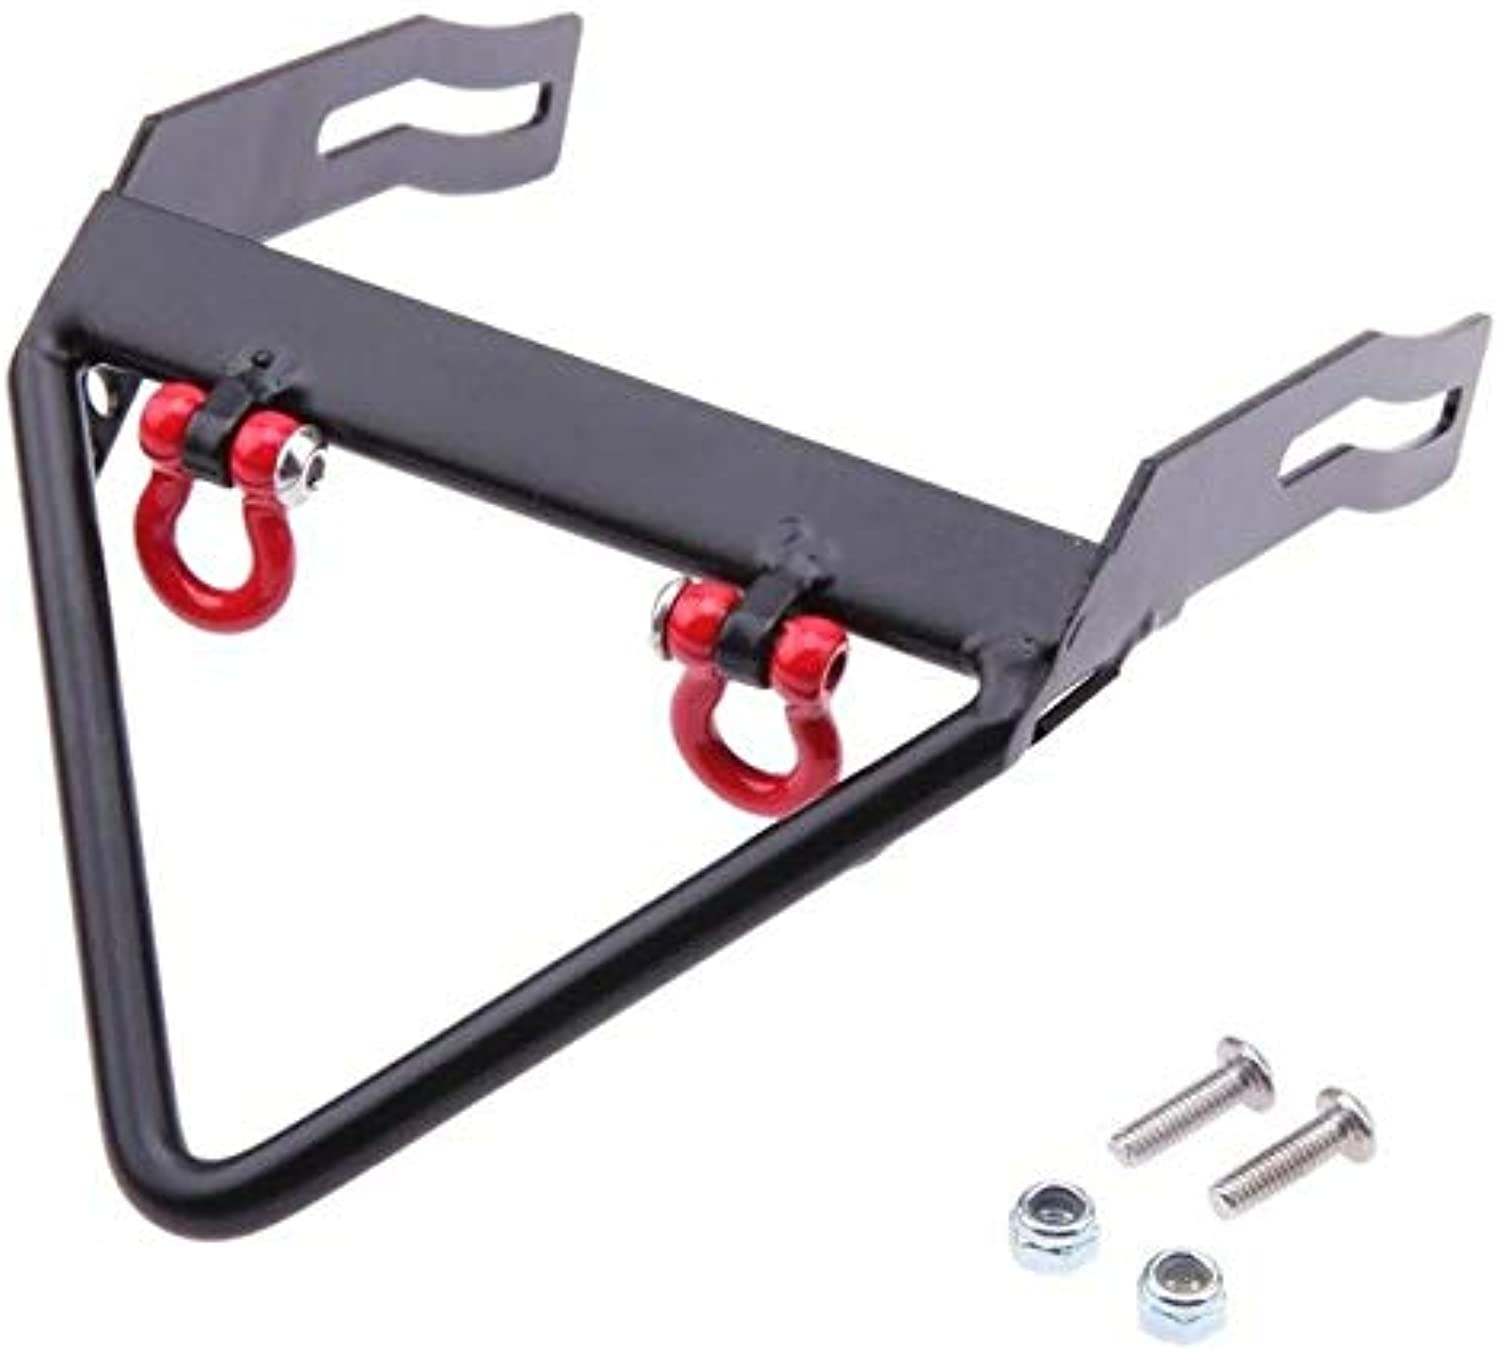 Car Metal Bumpers Black t Part for AXIAL SCX10 Carframe with Accessories   Black